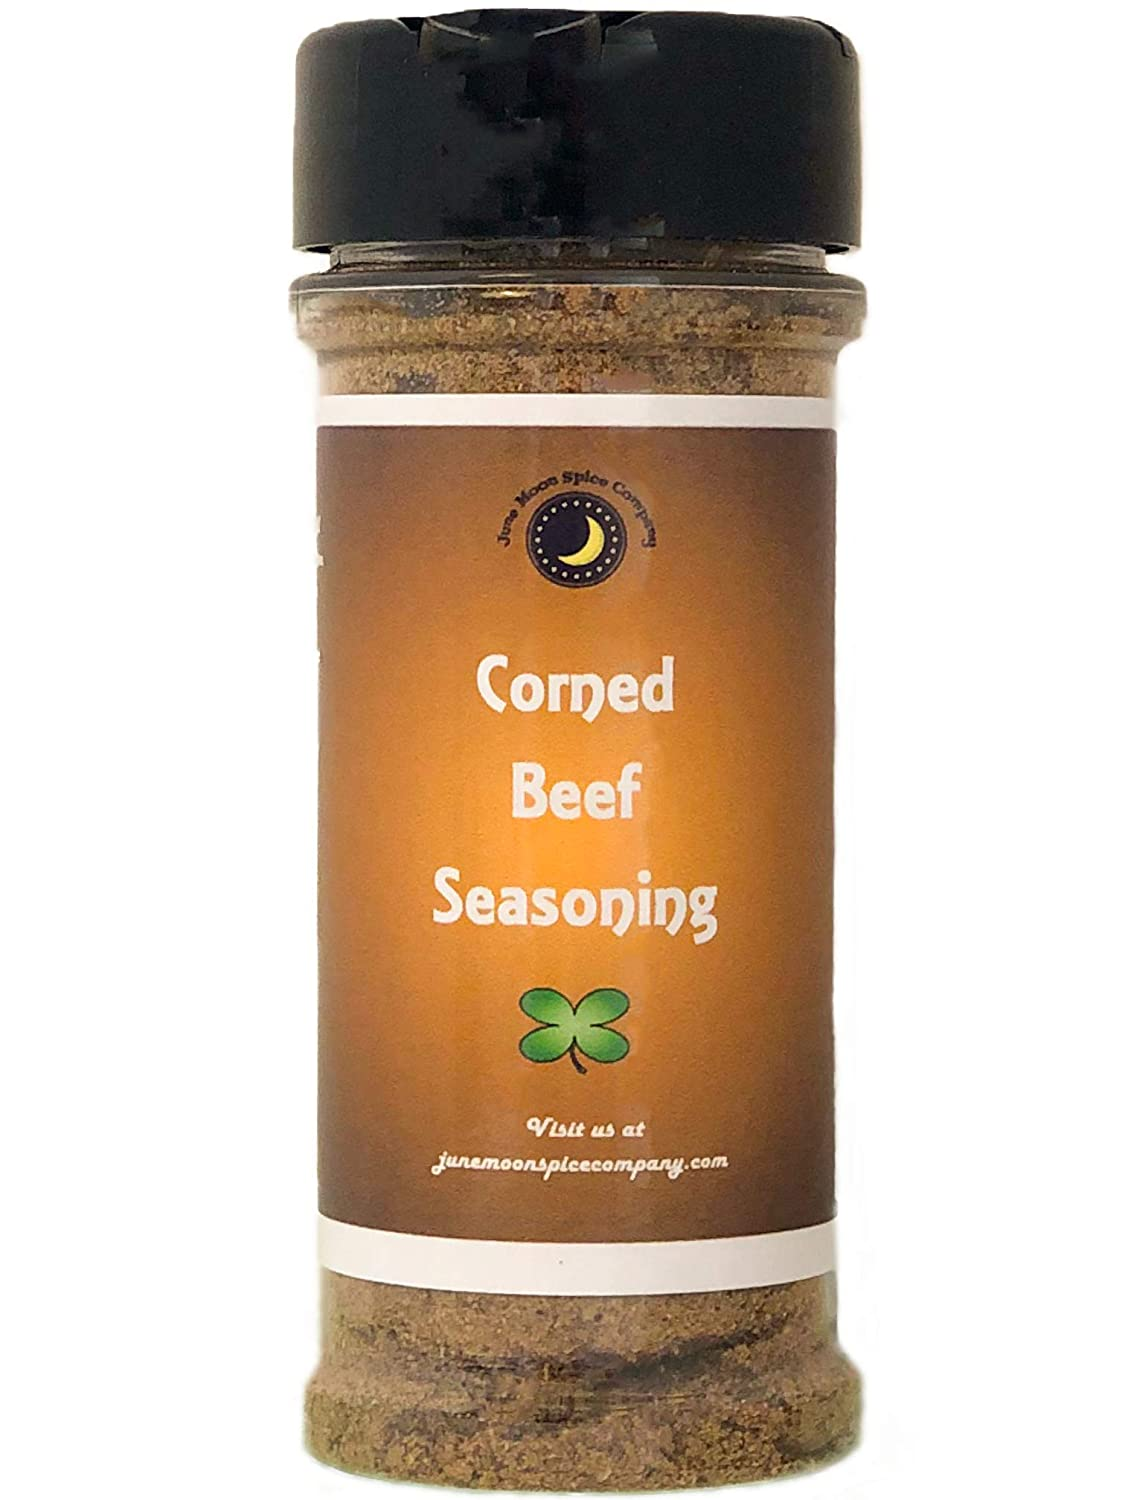 Premium | CORNED BEEF Seasoning | Calorie Free | Fat Free | Saturated Fat Free | Cholesterol Free | Sugar Free | Crafted in Small Batches with Farm Fresh Herbs for Premium Flavor and Zest